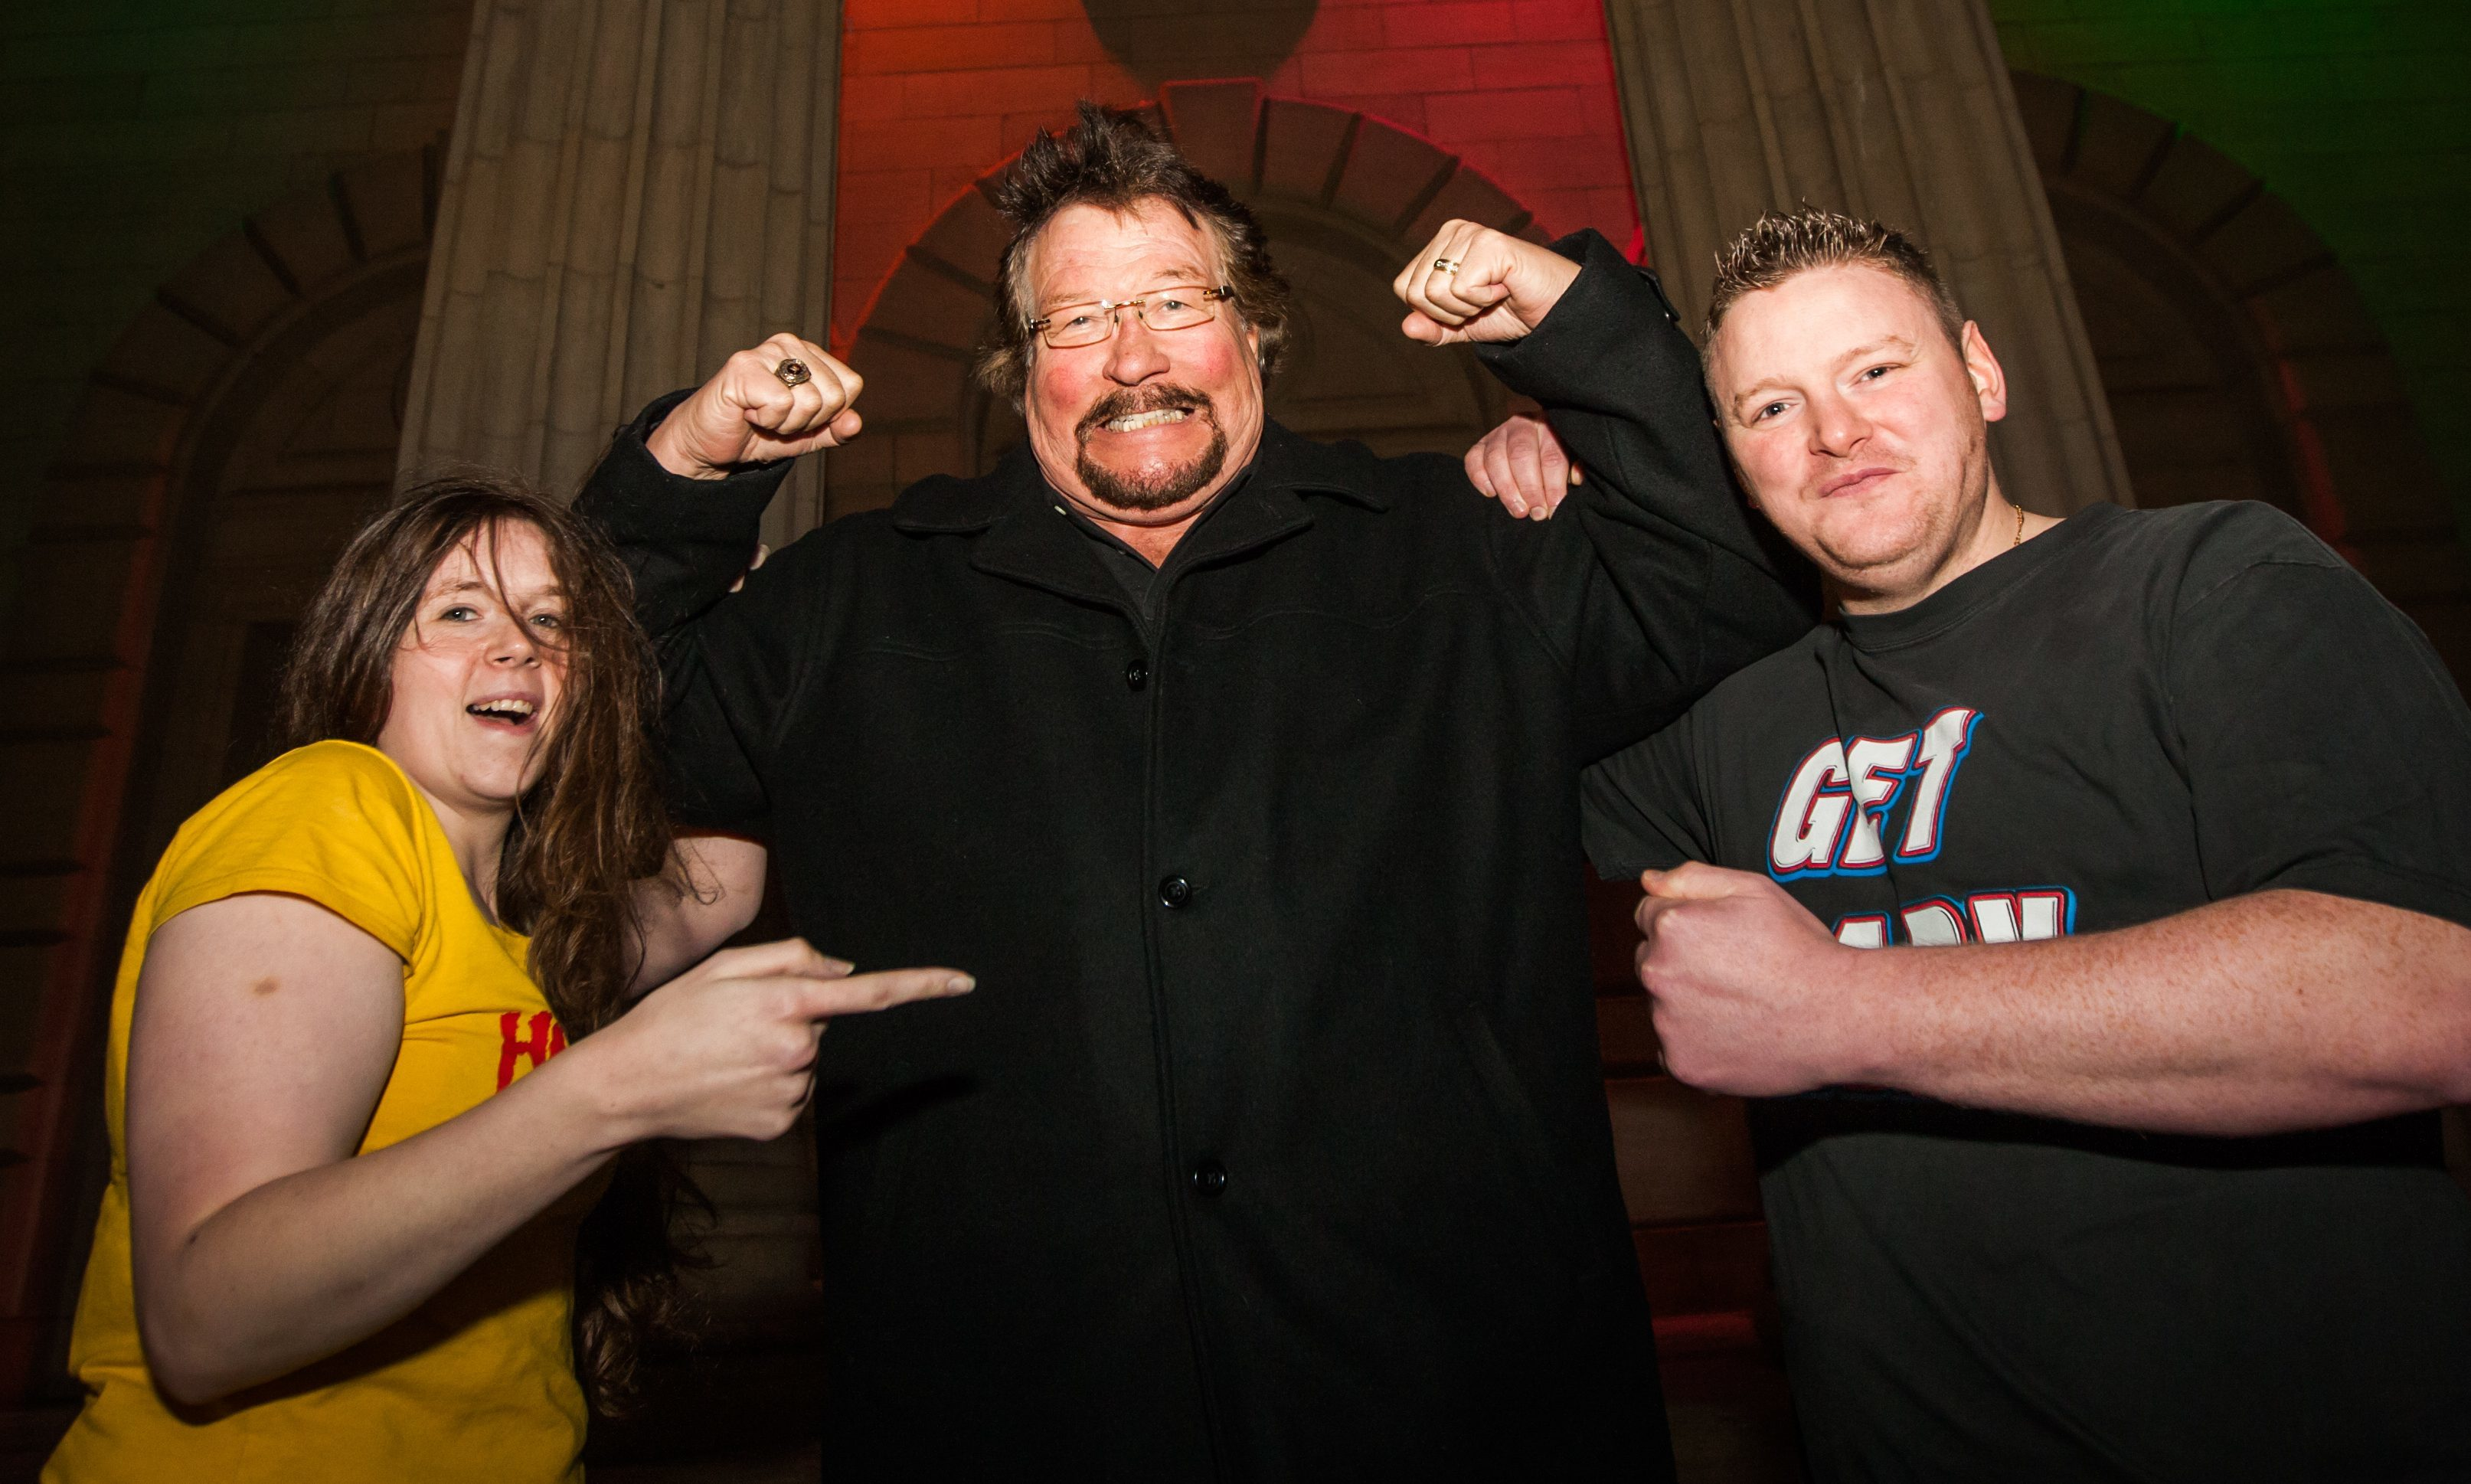 Million Dollar Man Ted DiBiase with groom Wayne Reilly and bride Vicky Nugent.